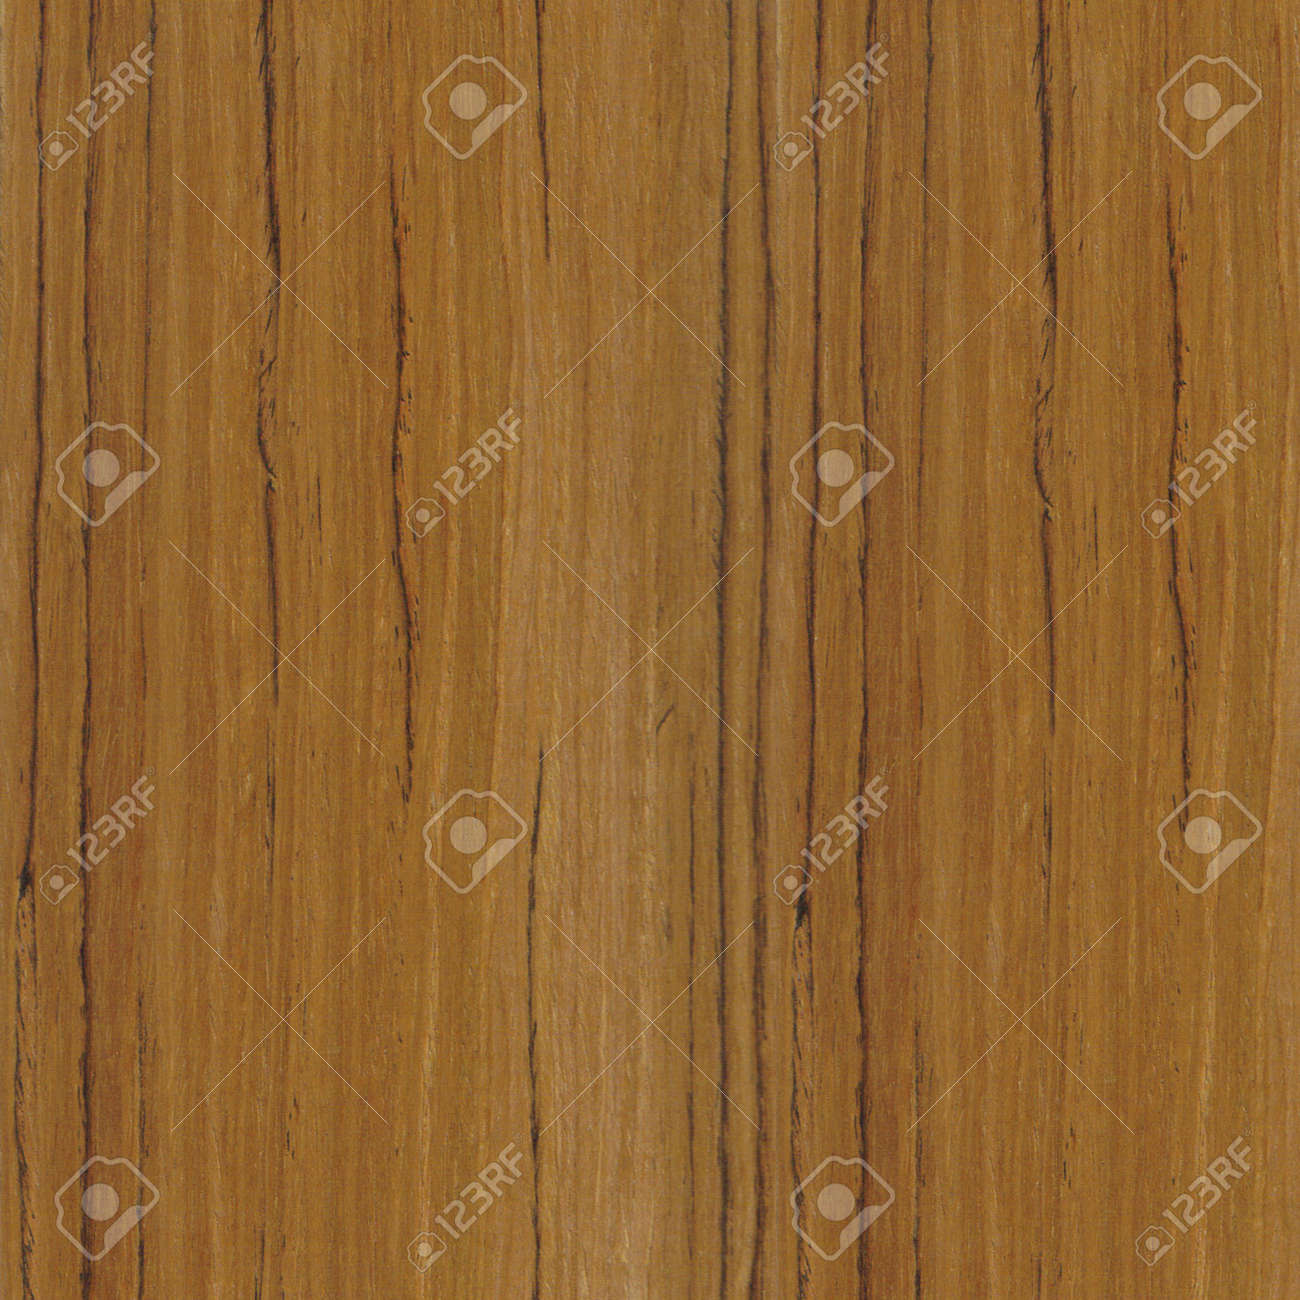 Texture Of Teak Veneer High Detailed Wood Texture Series Stock Photo Picture And Royalty Free Image Image 9241842